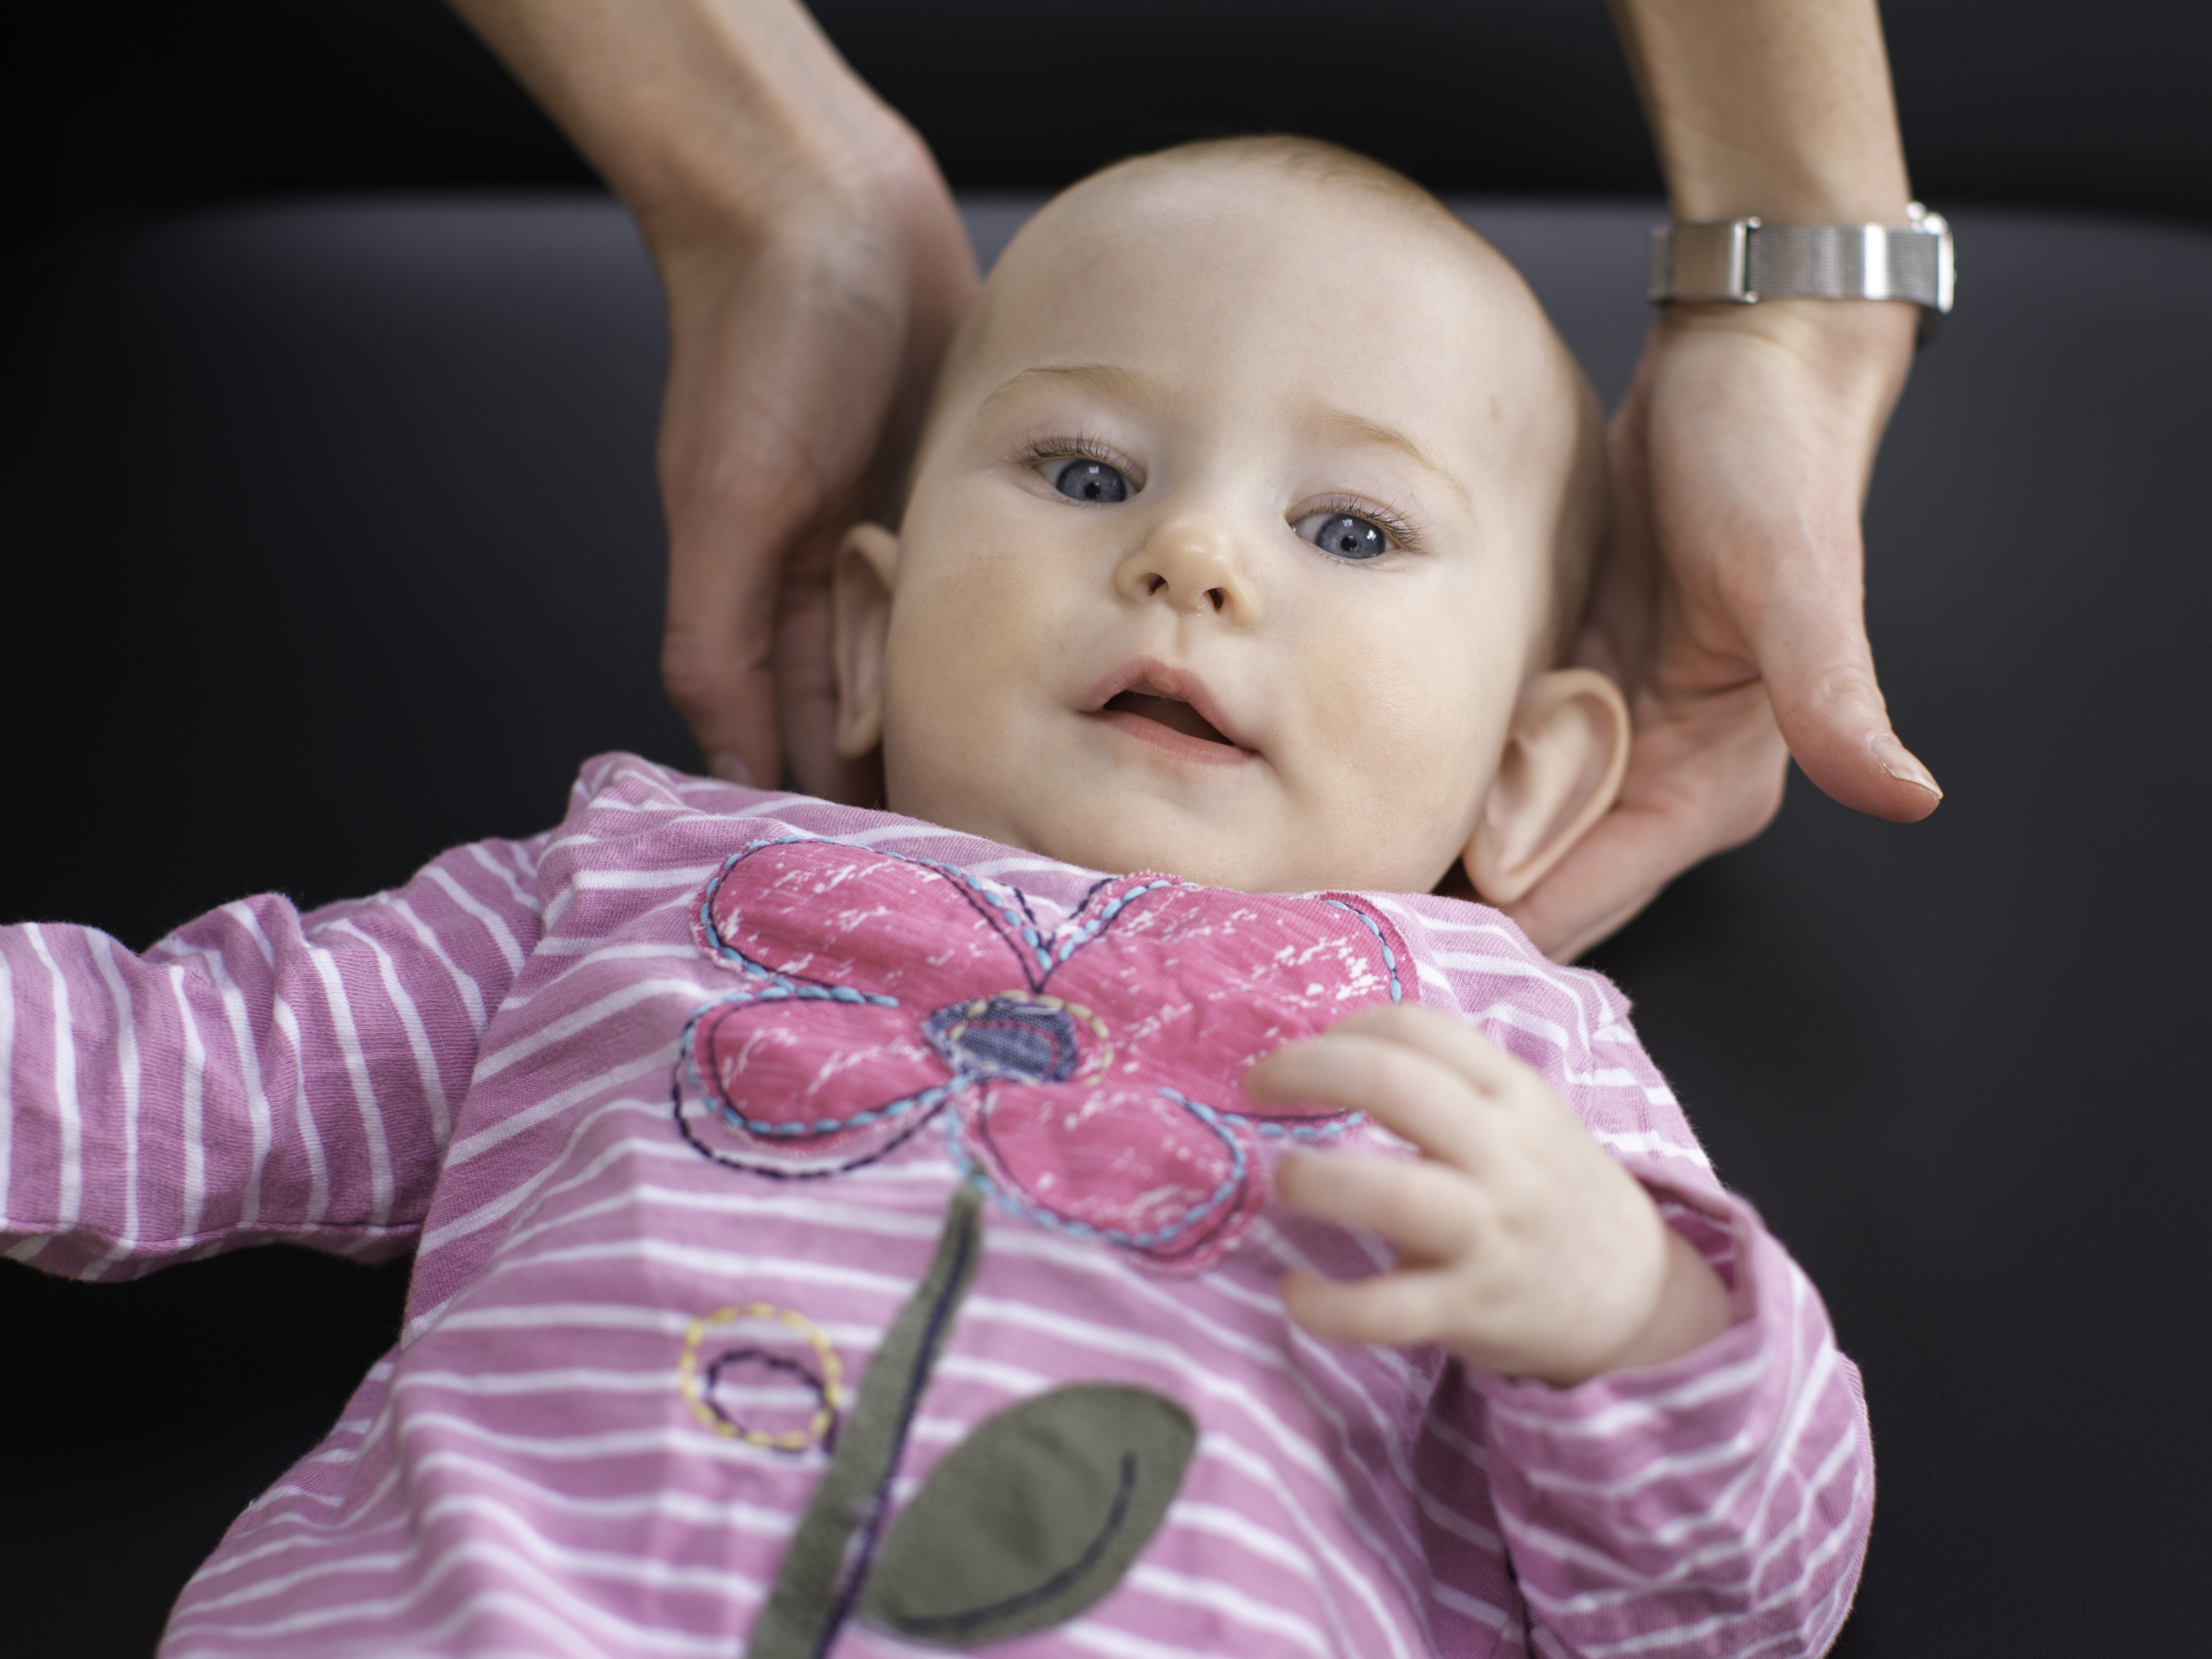 Chiropractor paediatric baby care